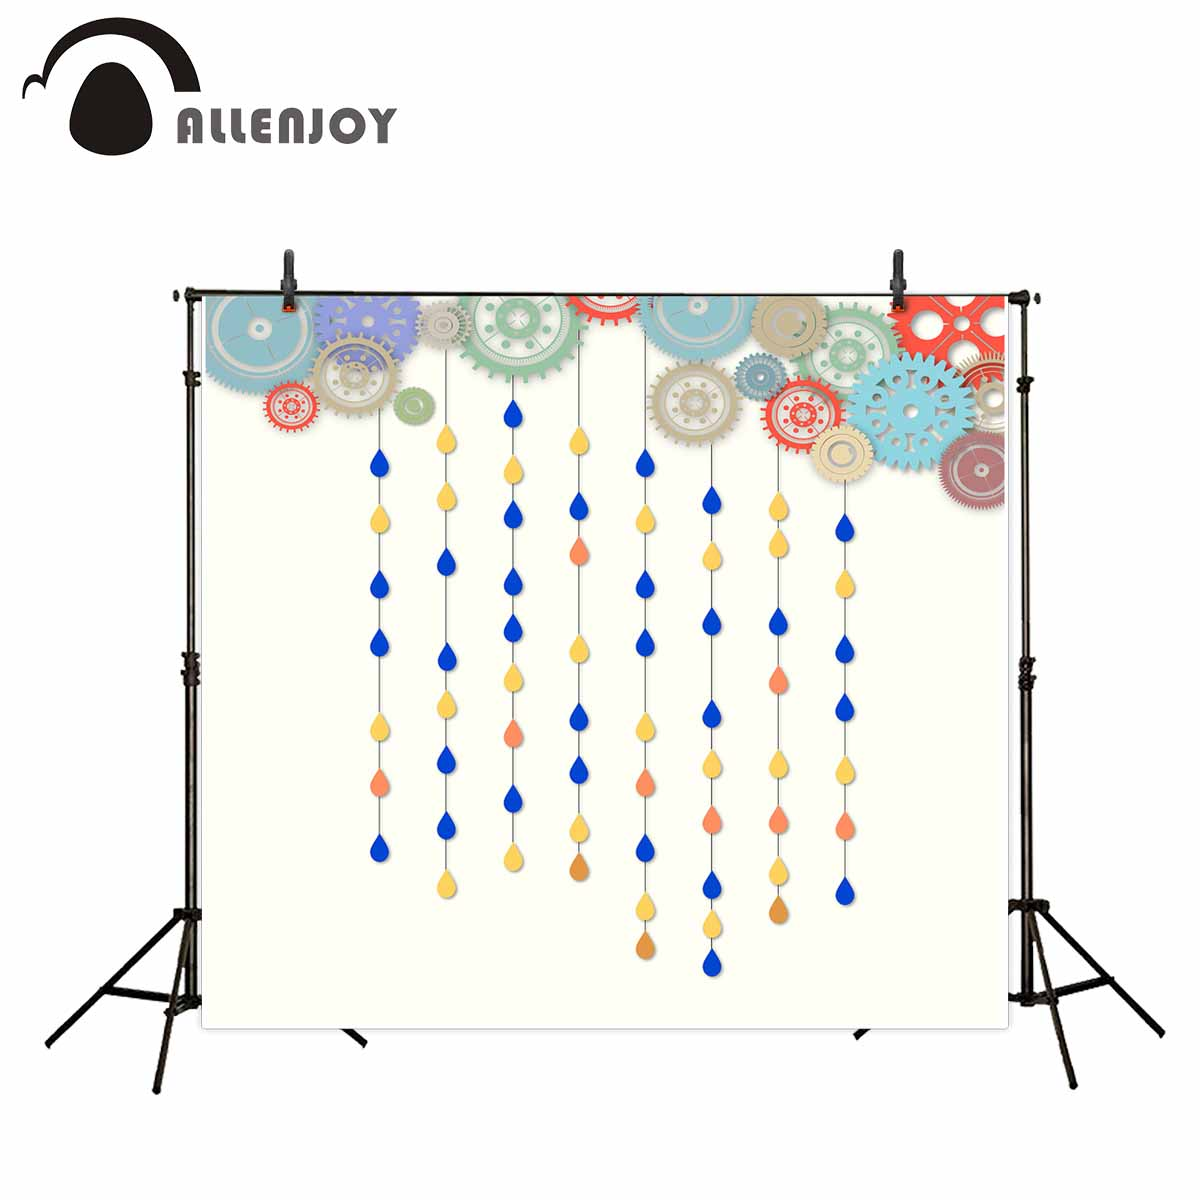 Allenjoy photographic backdrop colorful gear sevilla raindrop baby background photocall photobooth vinyl cloth fabric